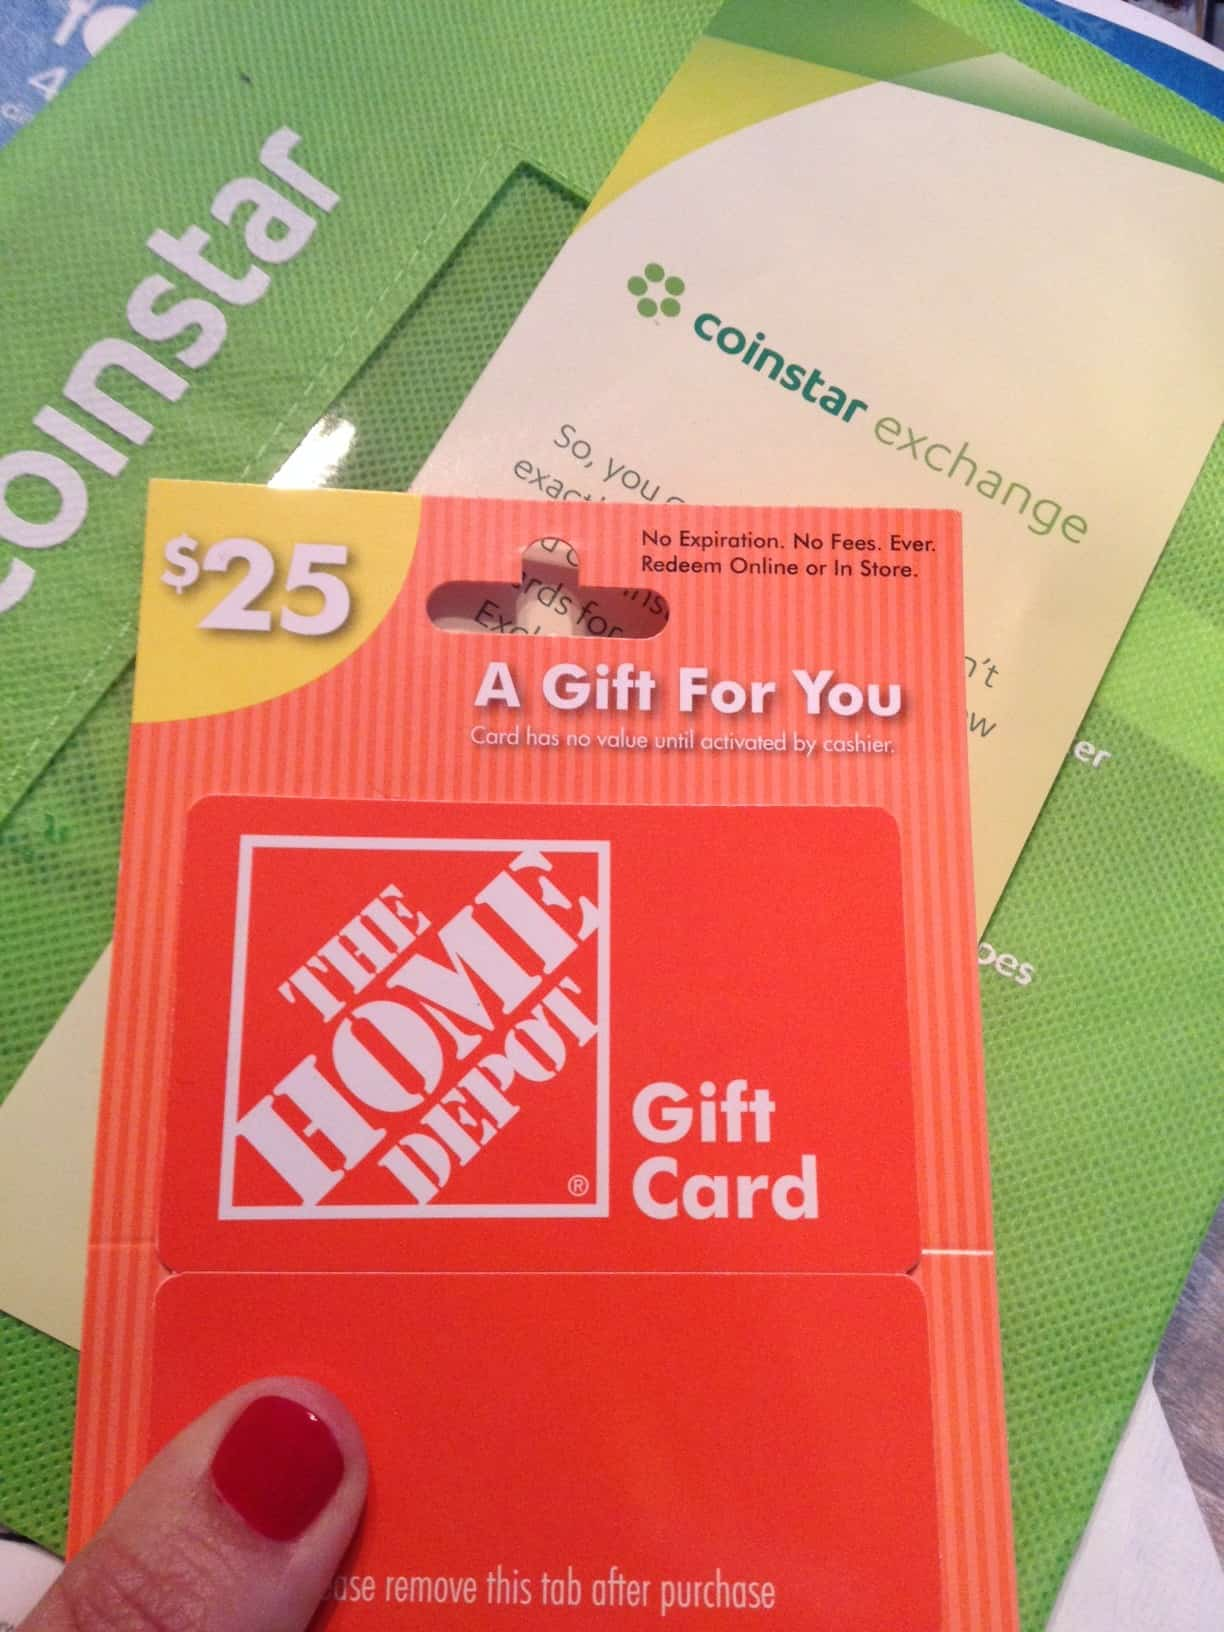 Comes to holiday gifts i bought this year about half were gift cards